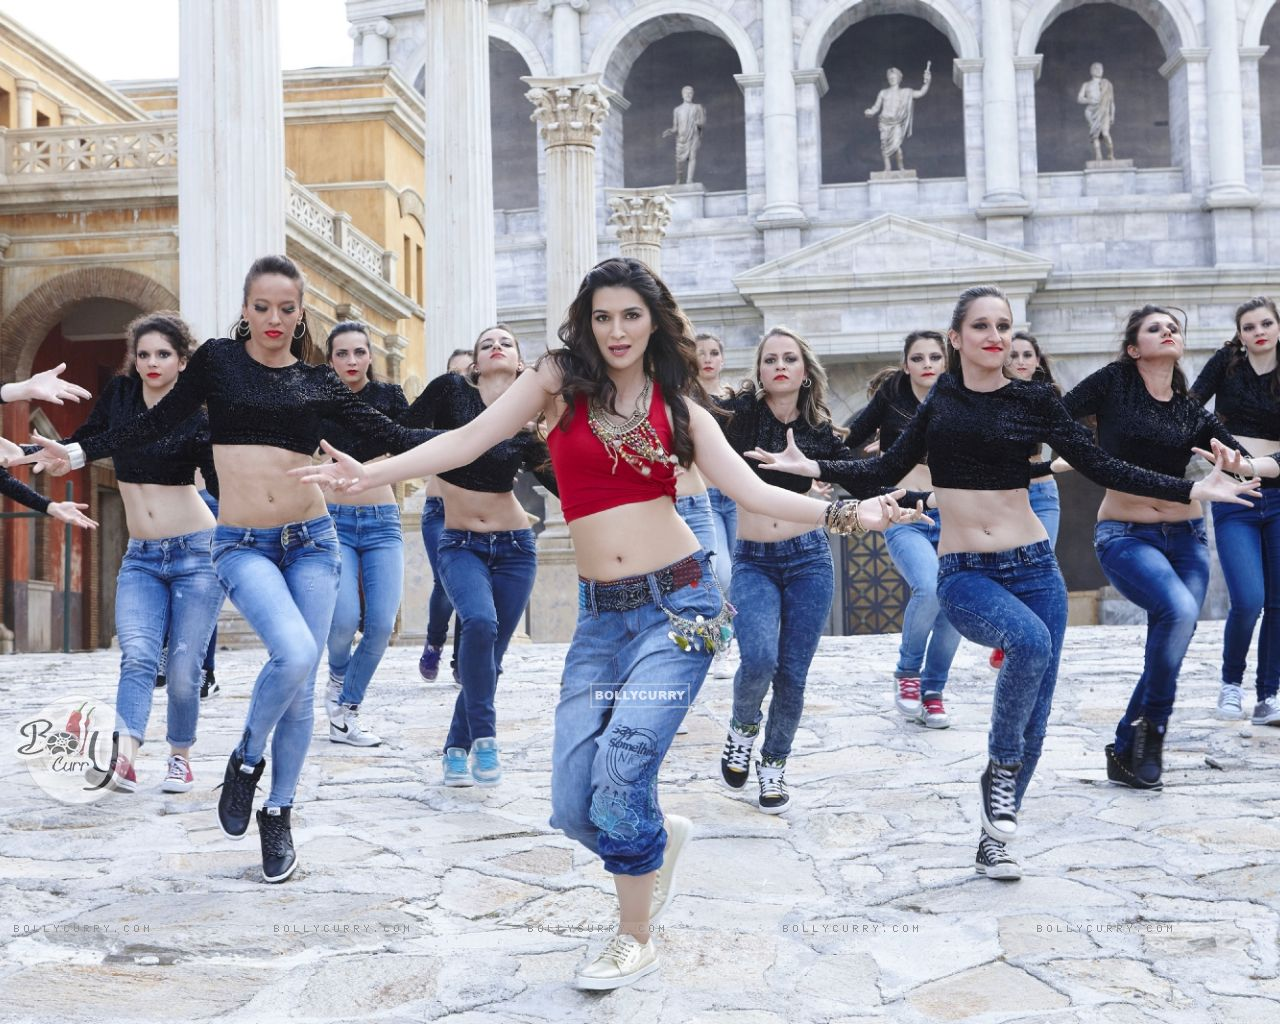 Kriti Sanon Sizzles in 'Manma Emotion Jaage' - second song of Dilwale (385774) size:1280x1024